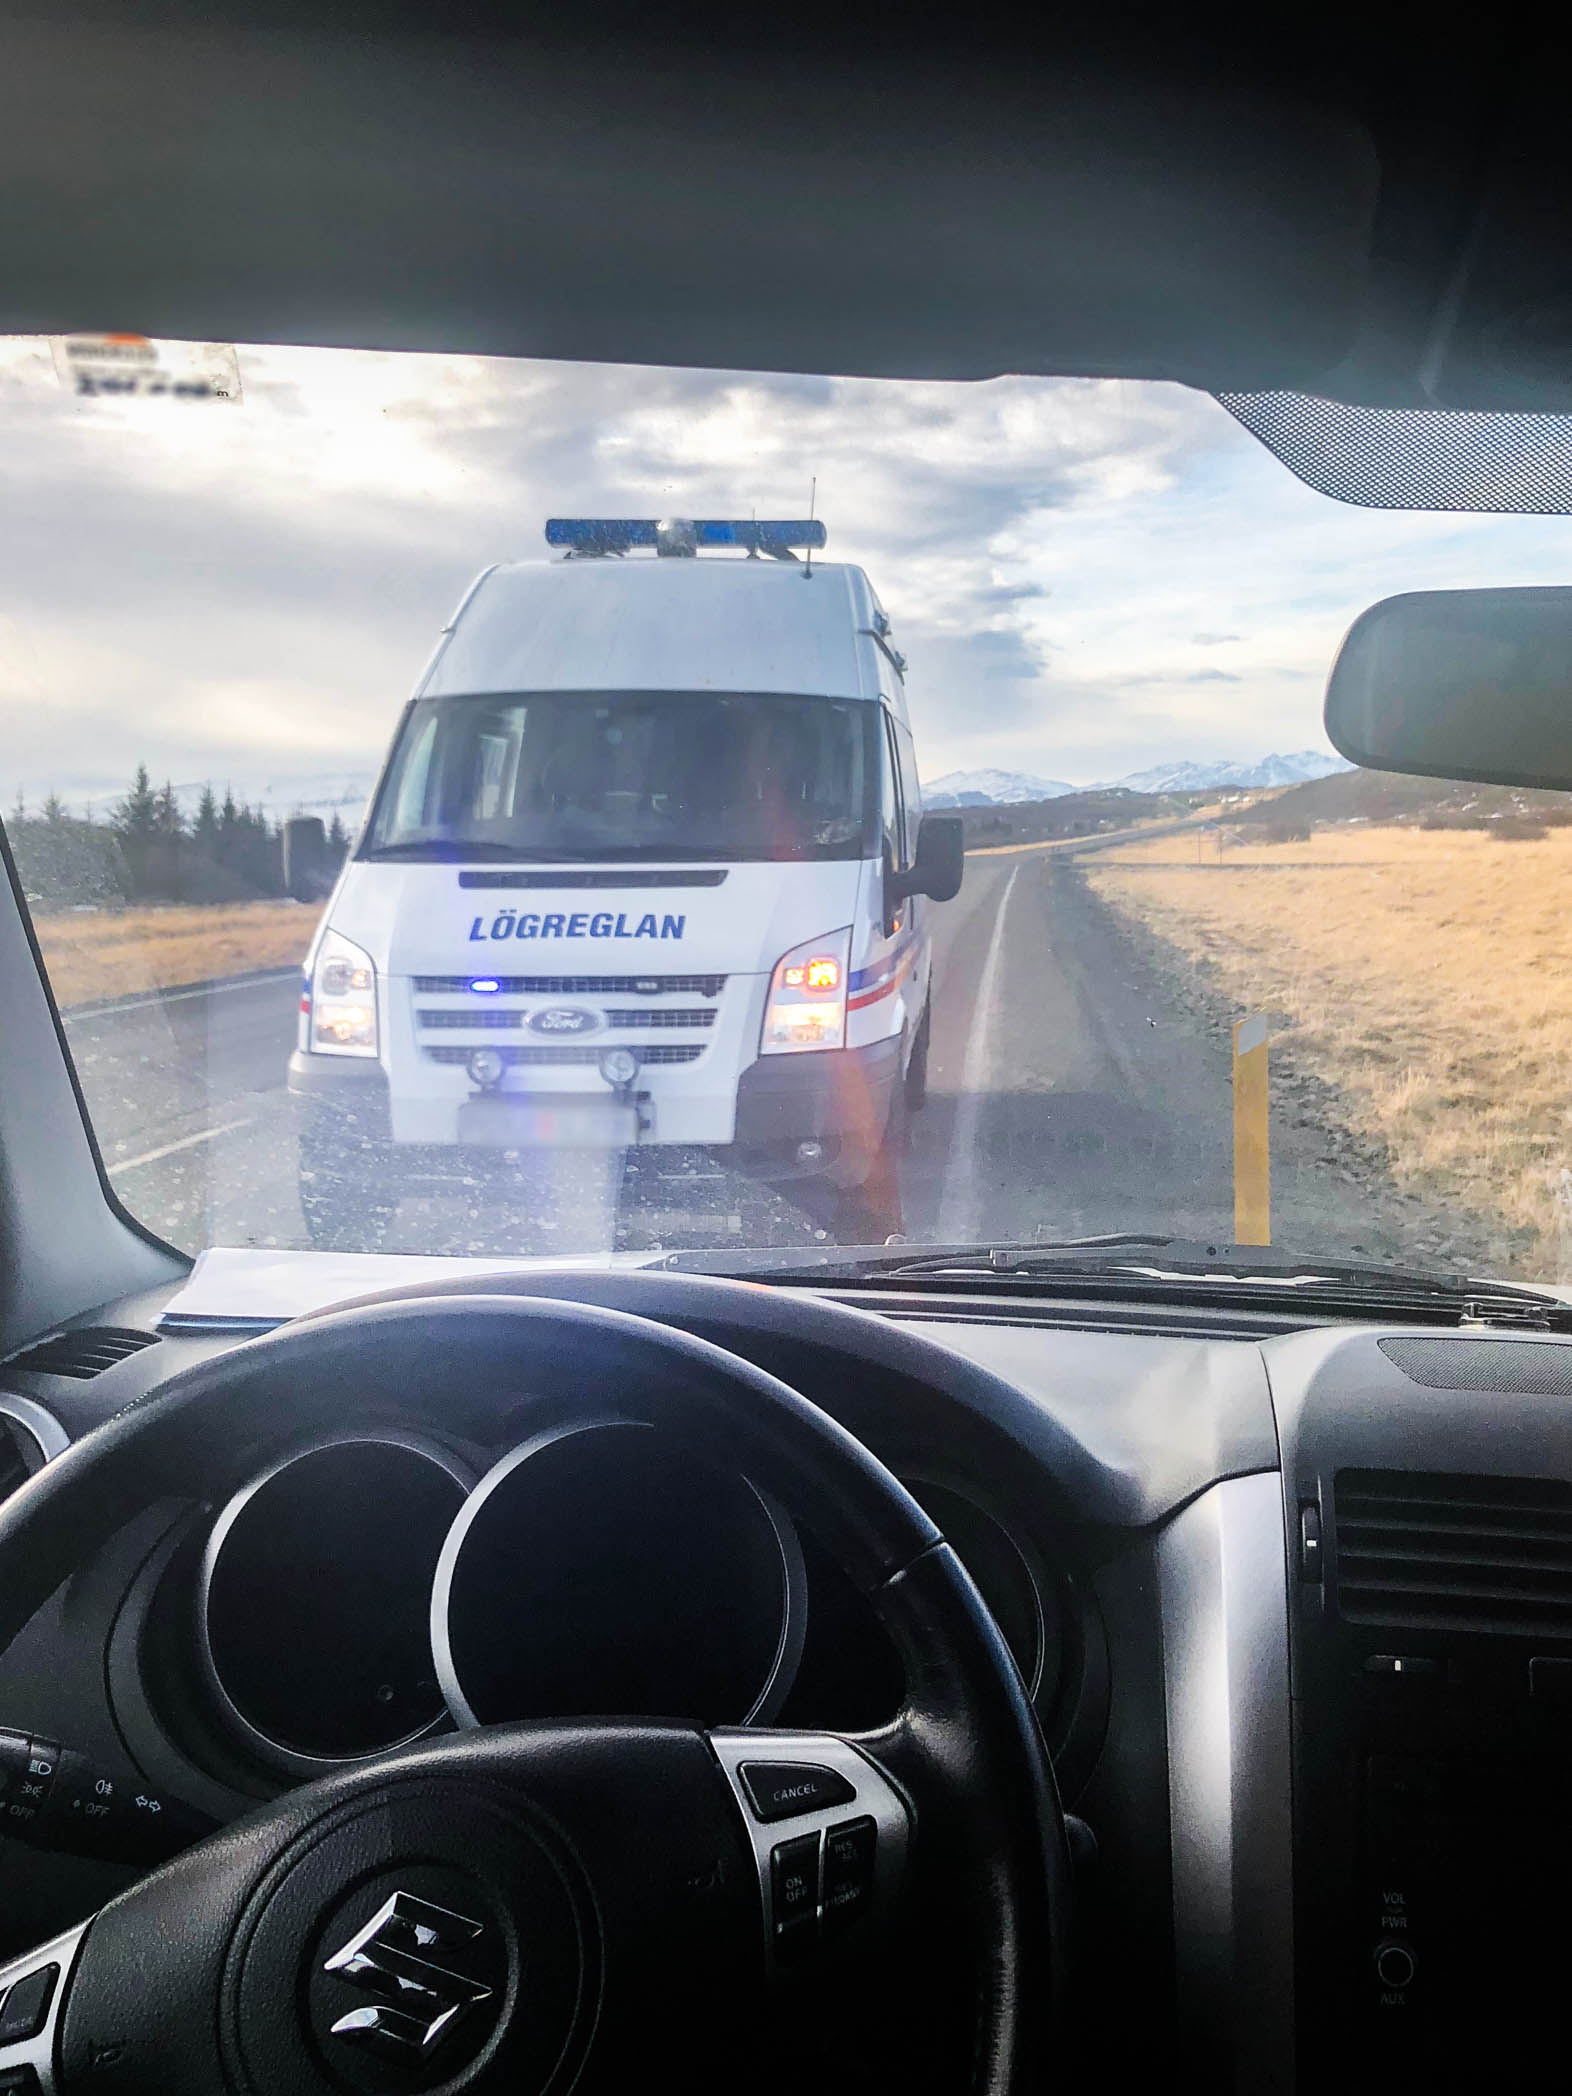 Pulled over in Iceland by police